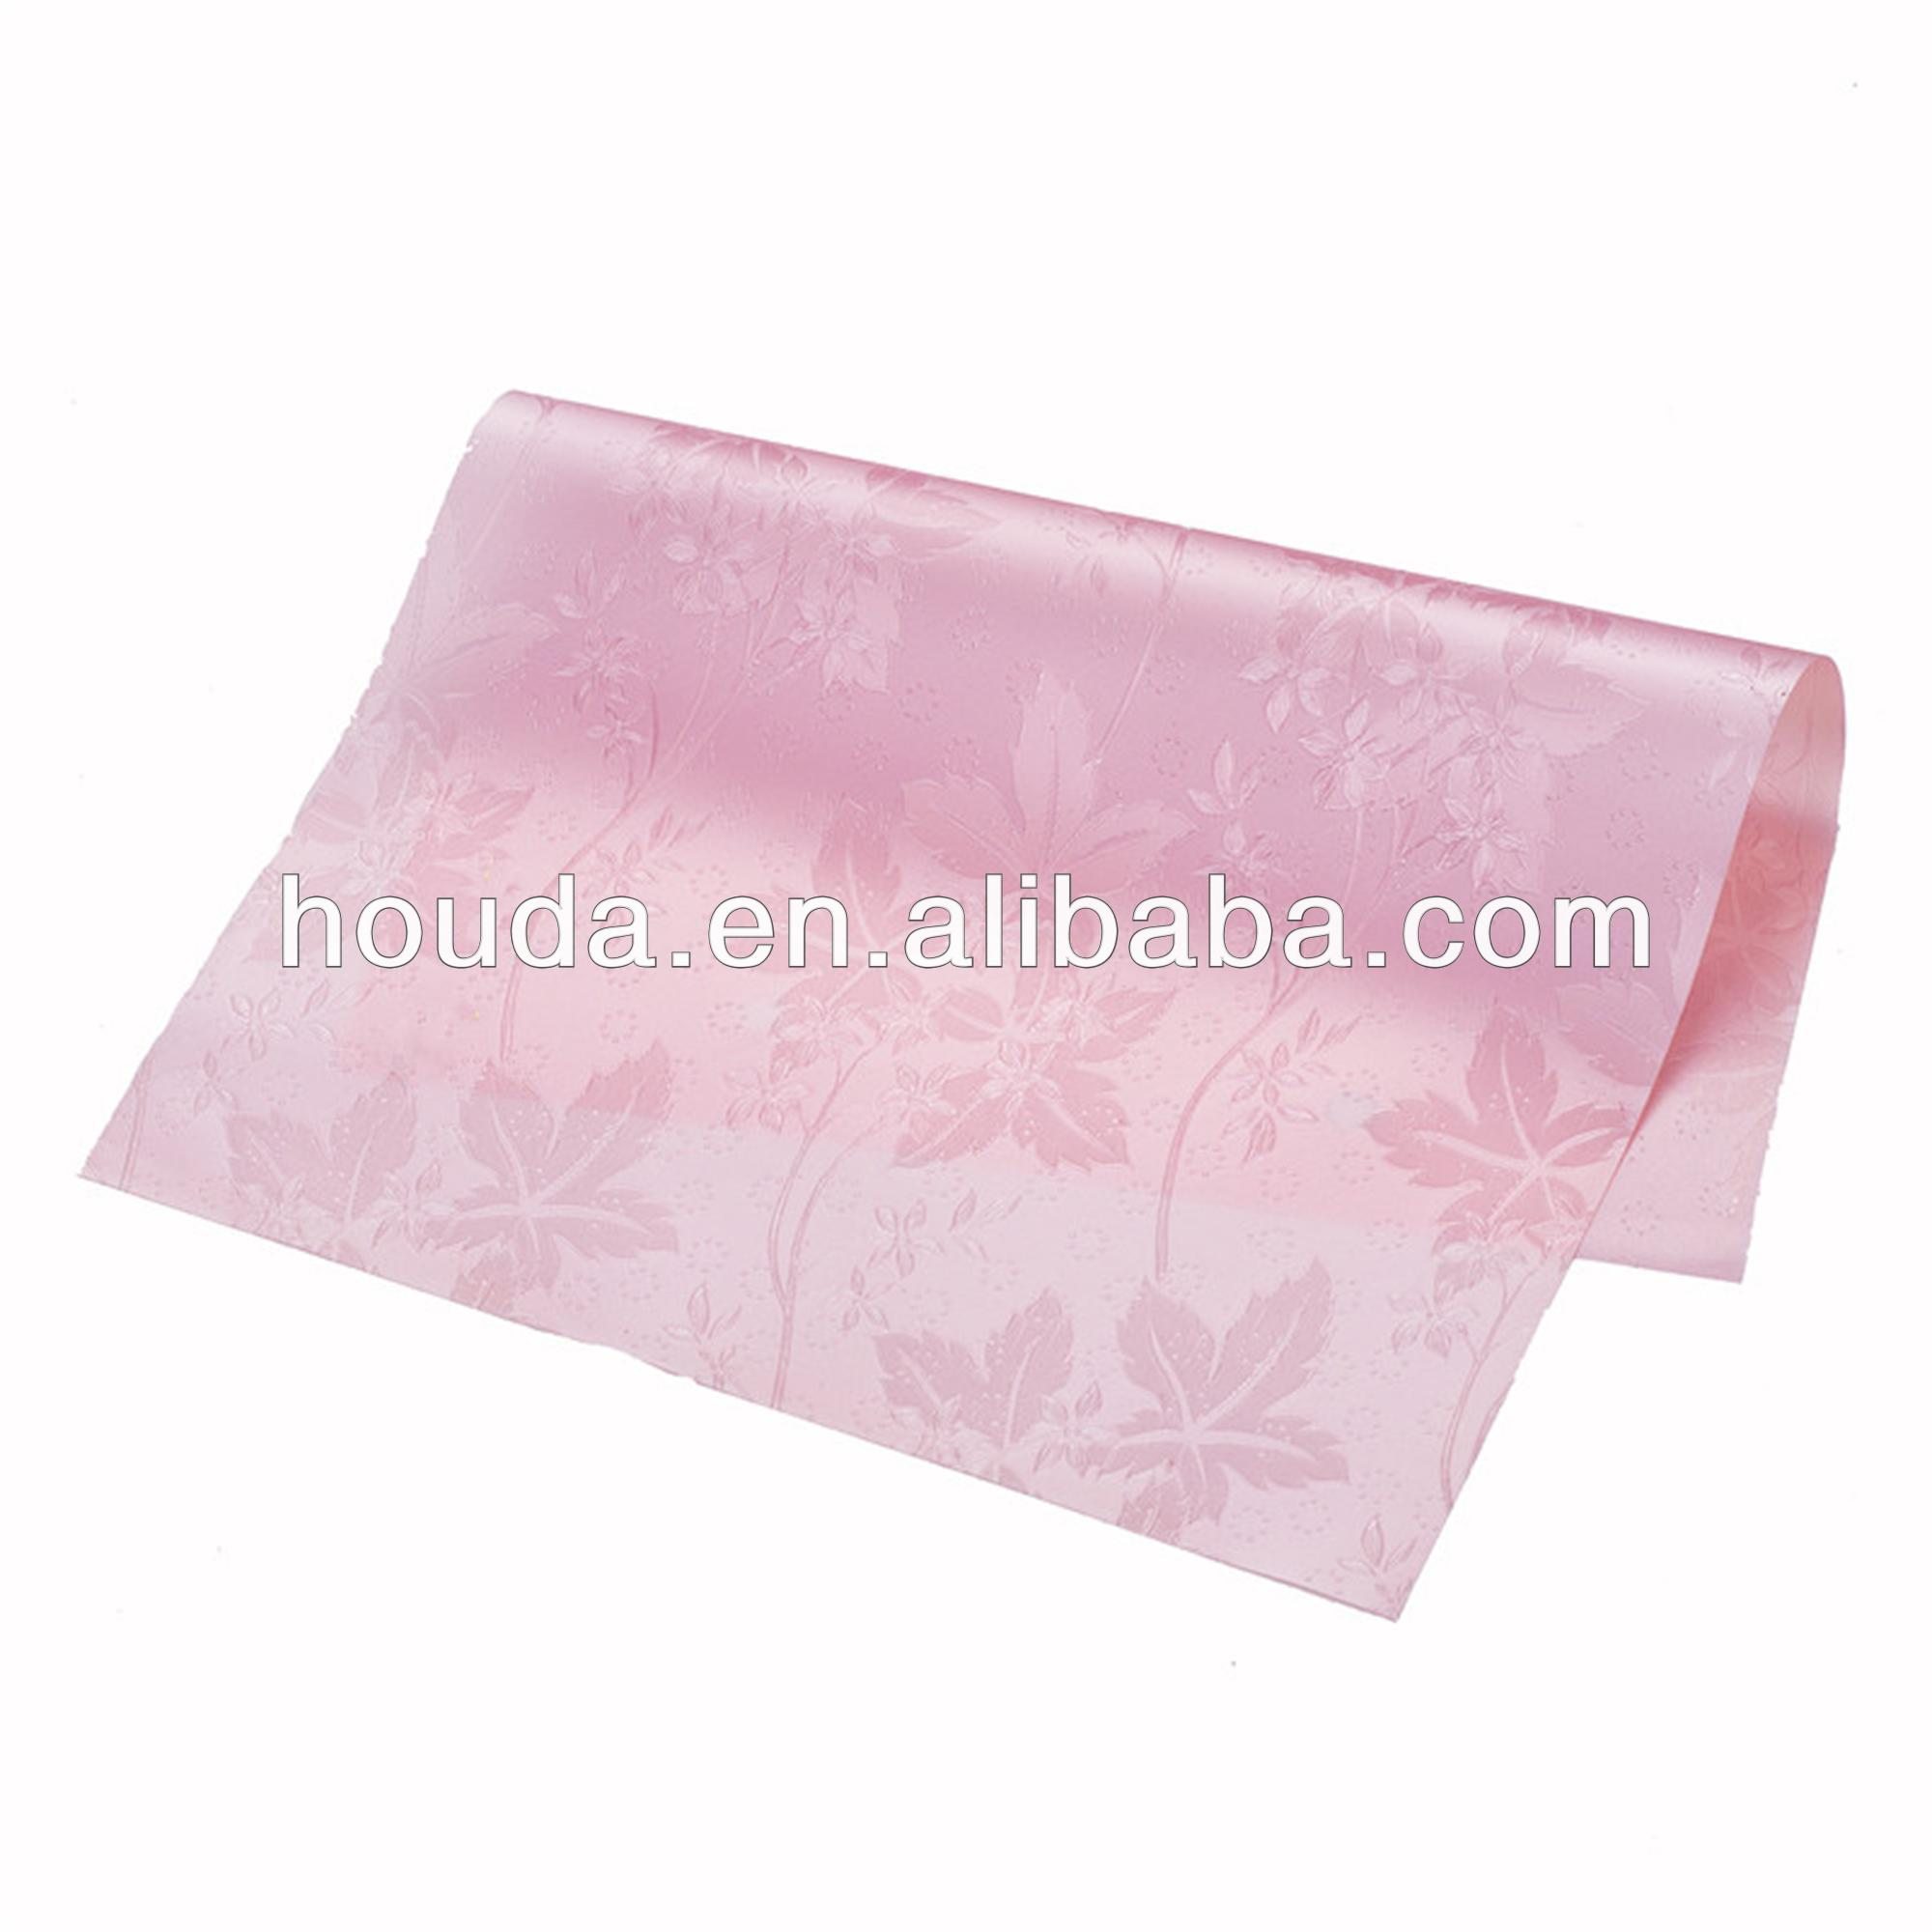 pink color roll soft pvc film for raincoat and apron